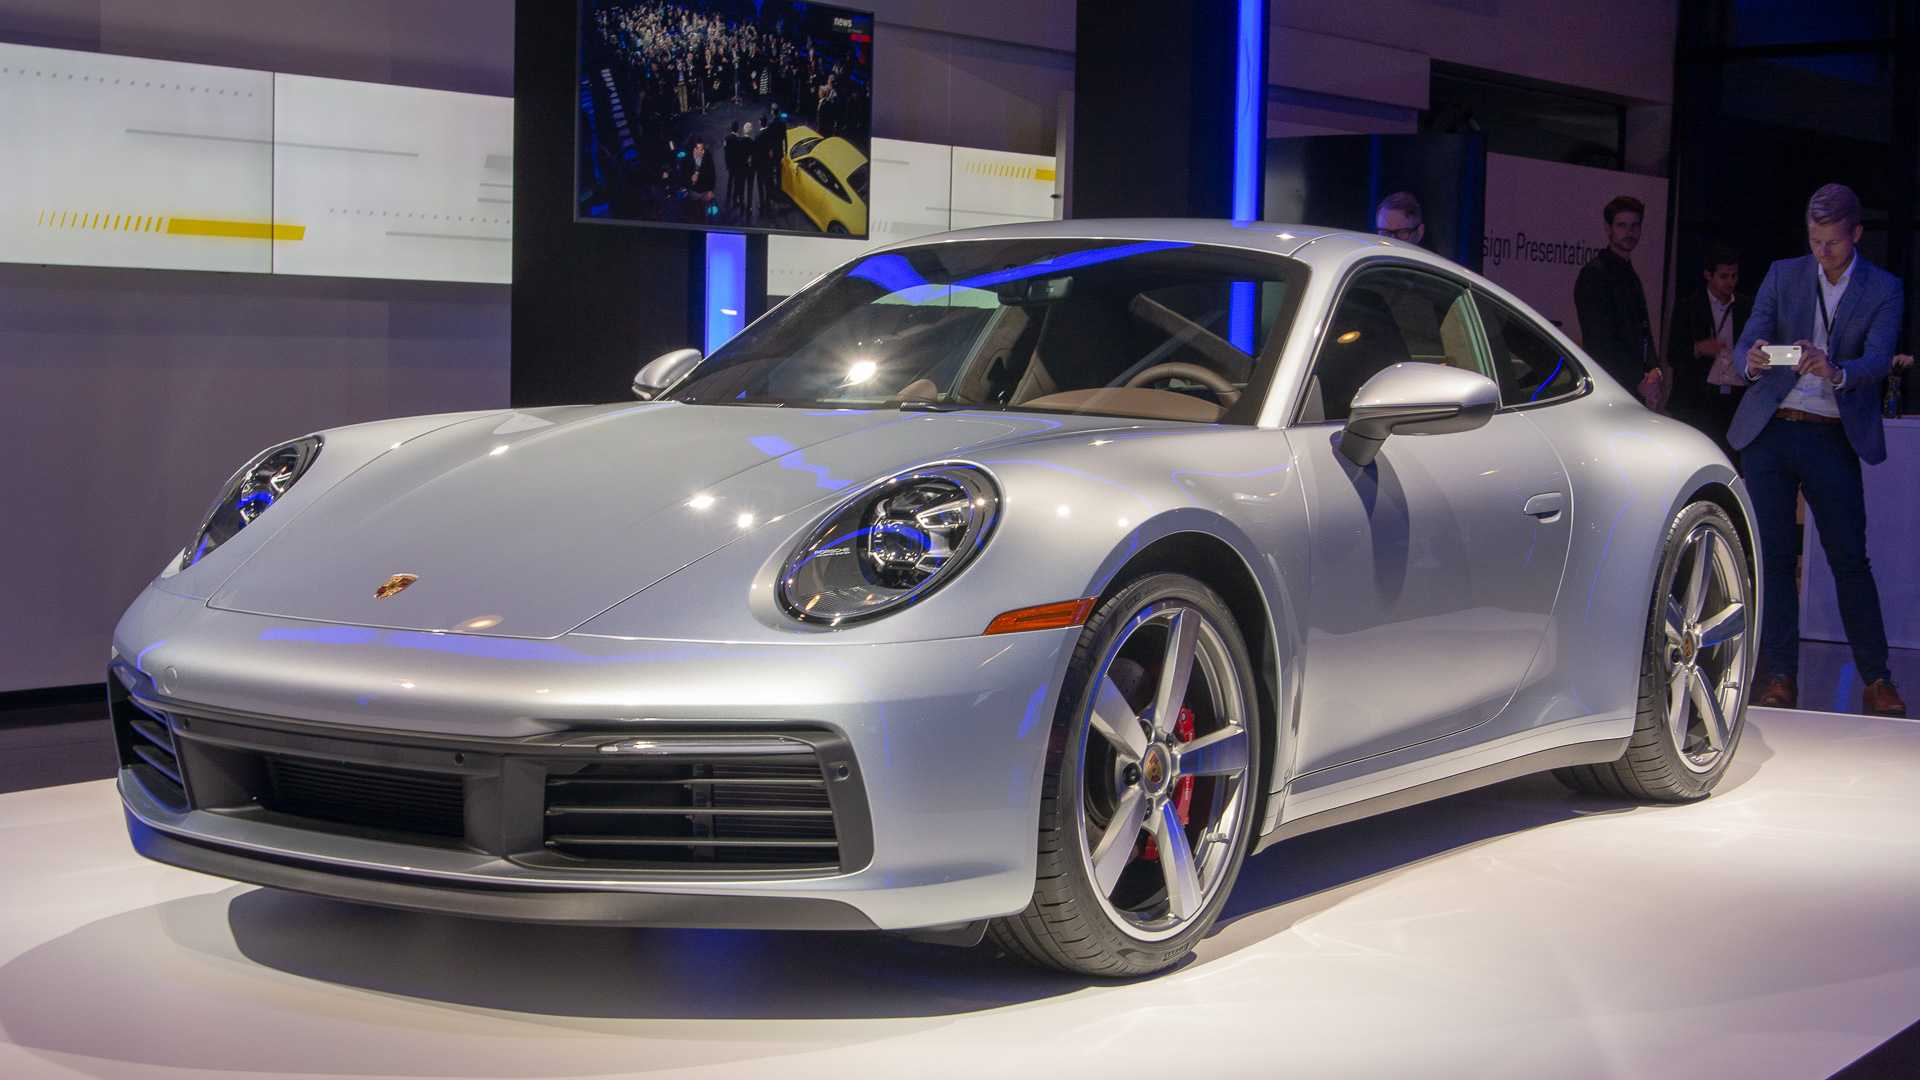 19 Gallery of 2020 Porsche 911 Carrera Configurations for 2020 Porsche 911 Carrera